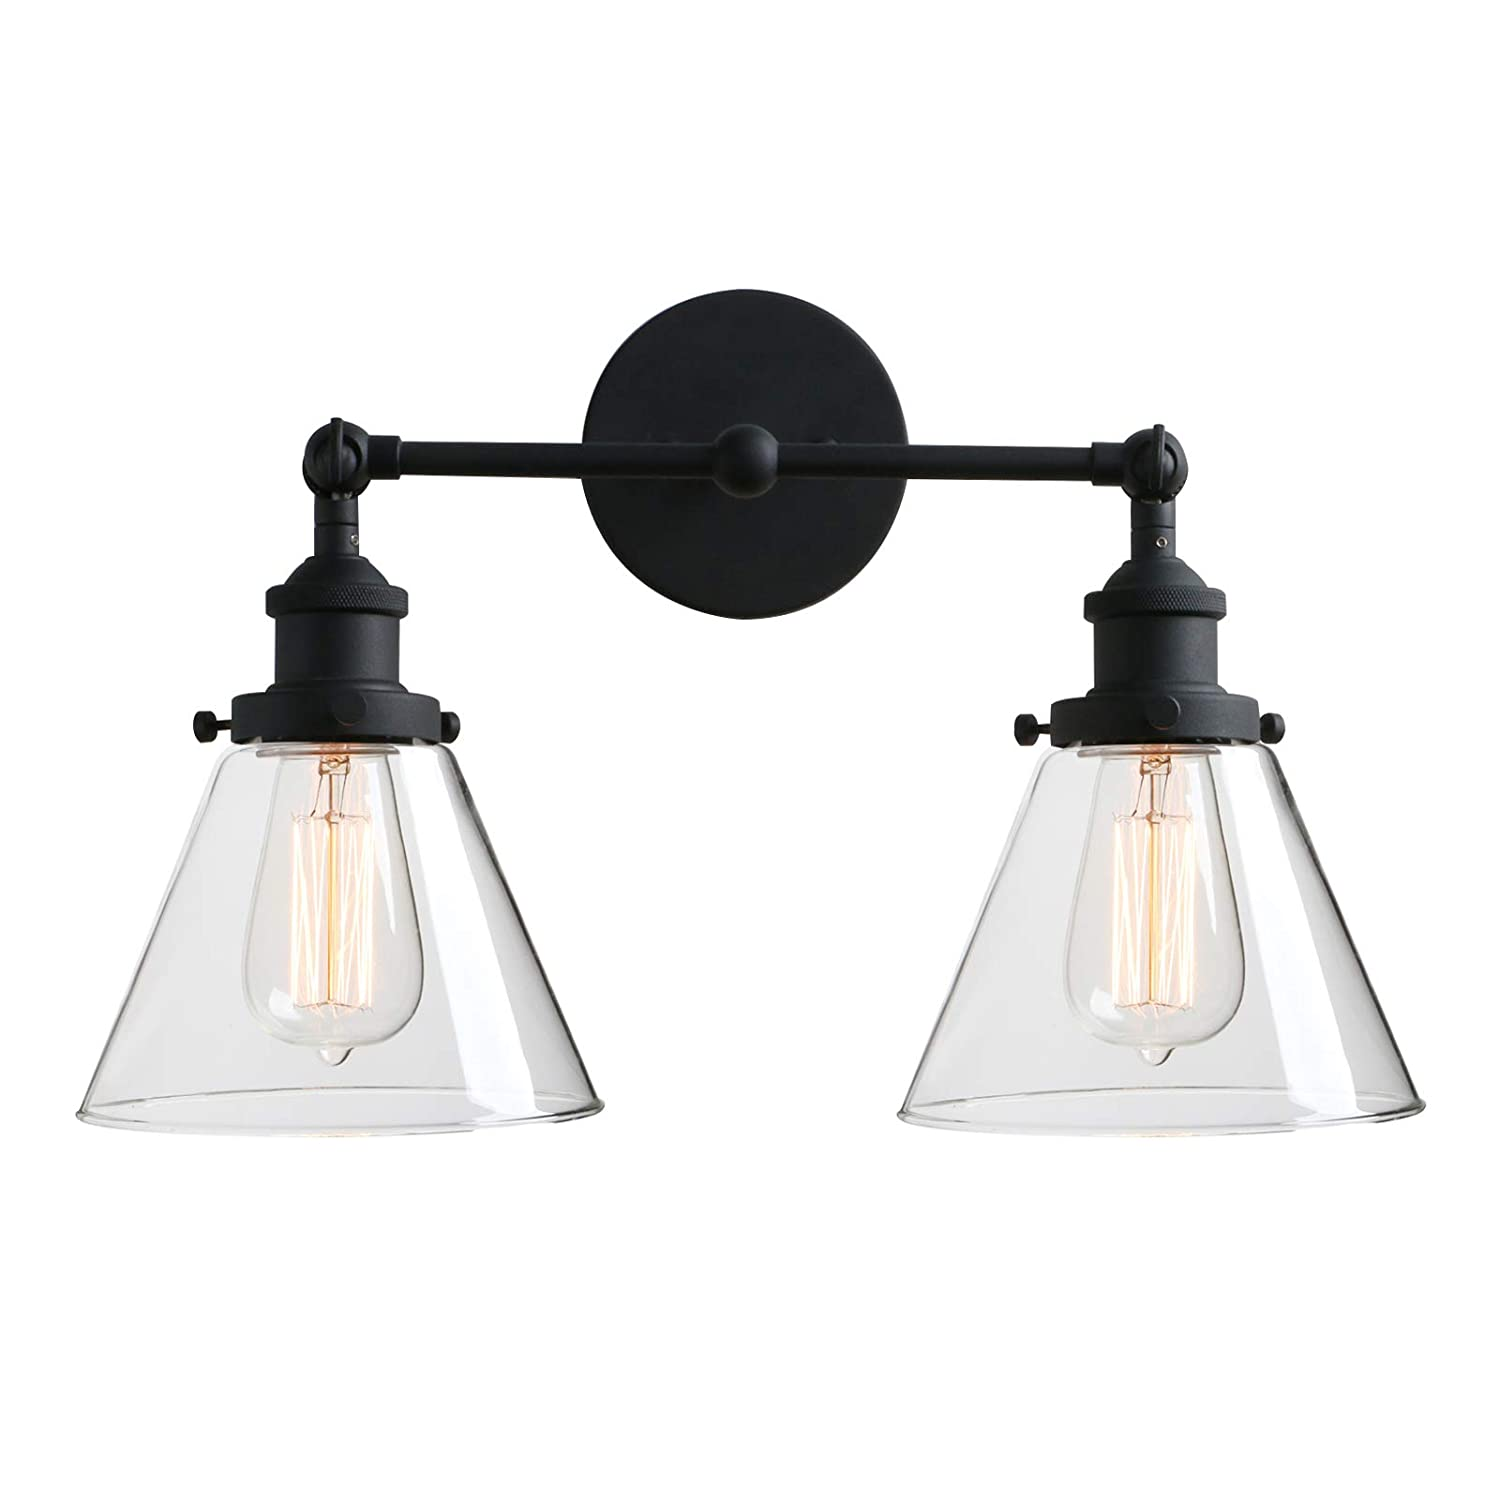 """Phansthy 2-Light Industrial Wall Light Antique Sconce Light Fixture with 7.3"""" Clear Glass Flared Shade (2-Light Clear)"""